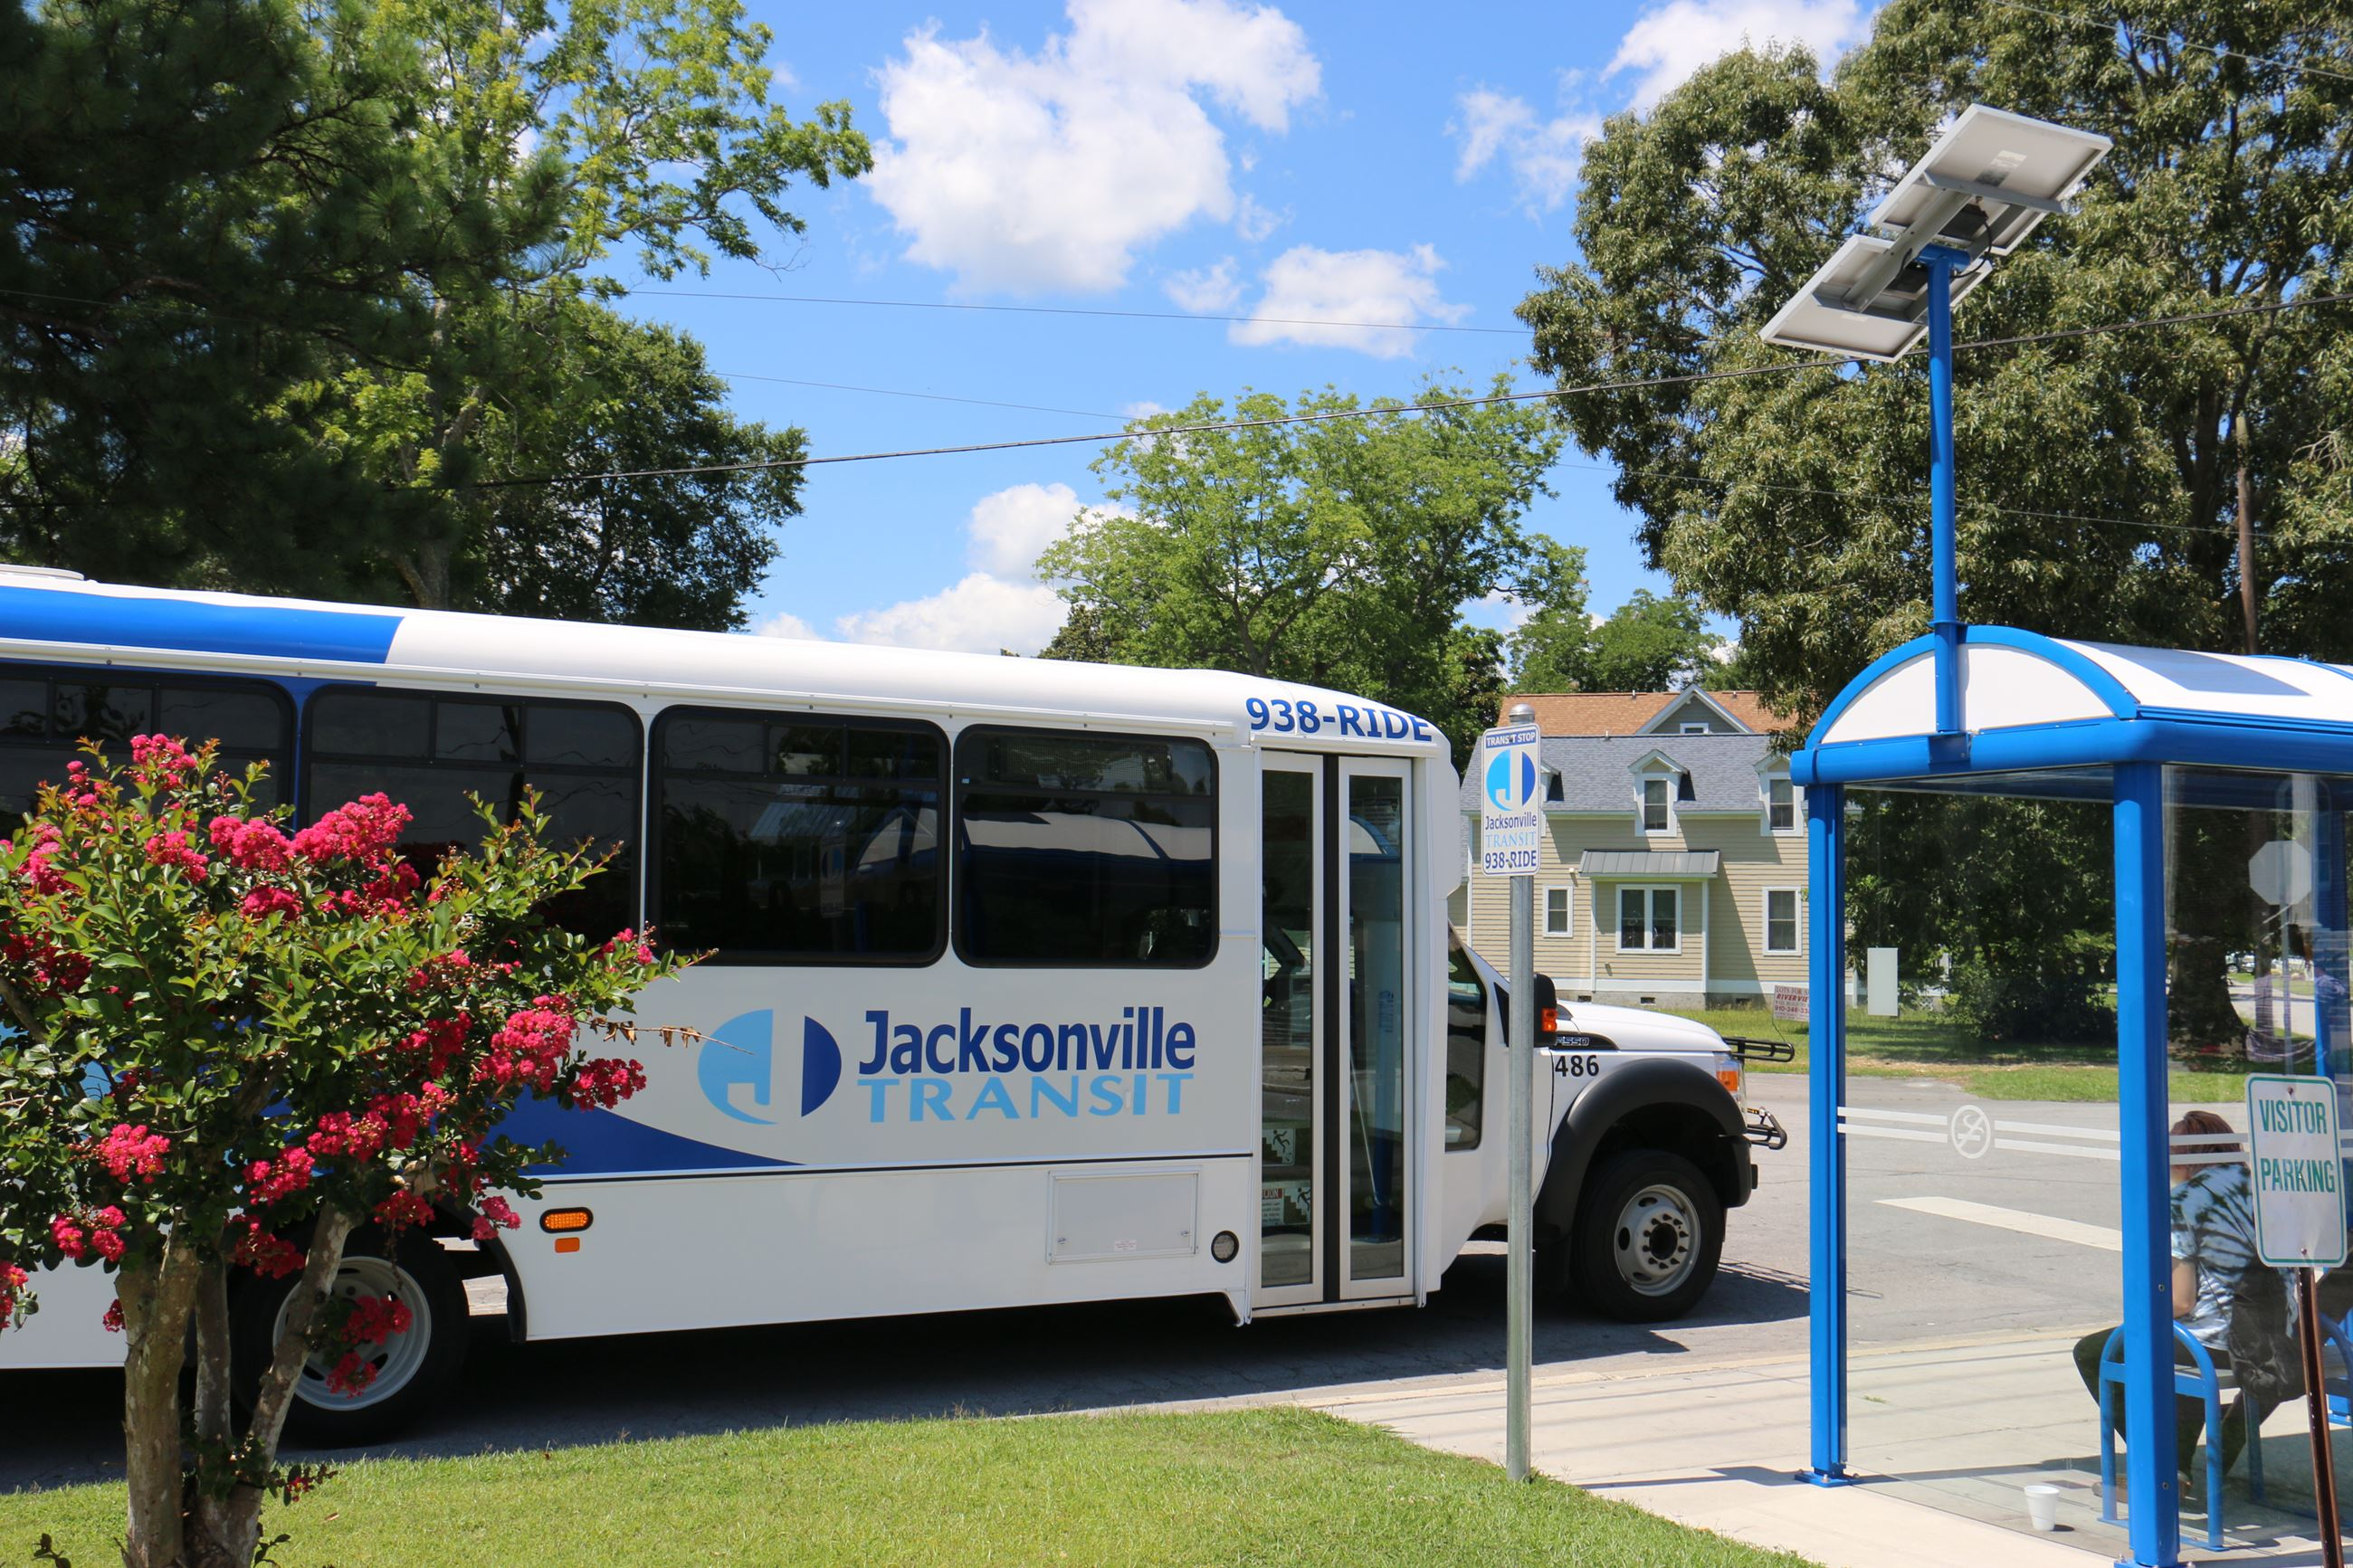 Jacksonville Transit at Bus Stop